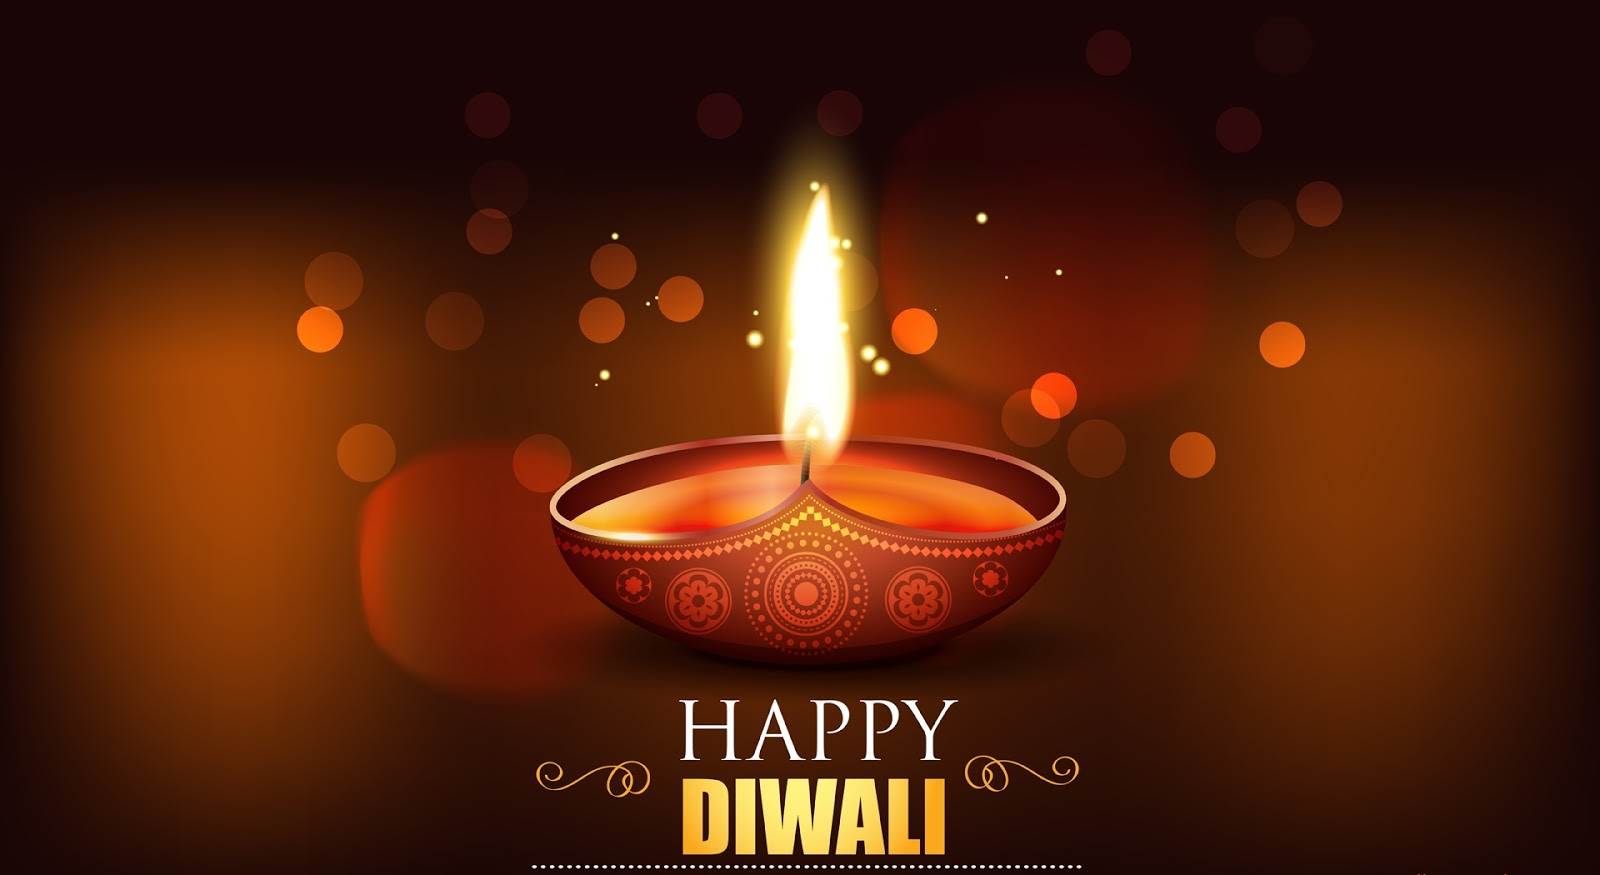 Diwali sms and greetings messages for diwali m4hsunfo